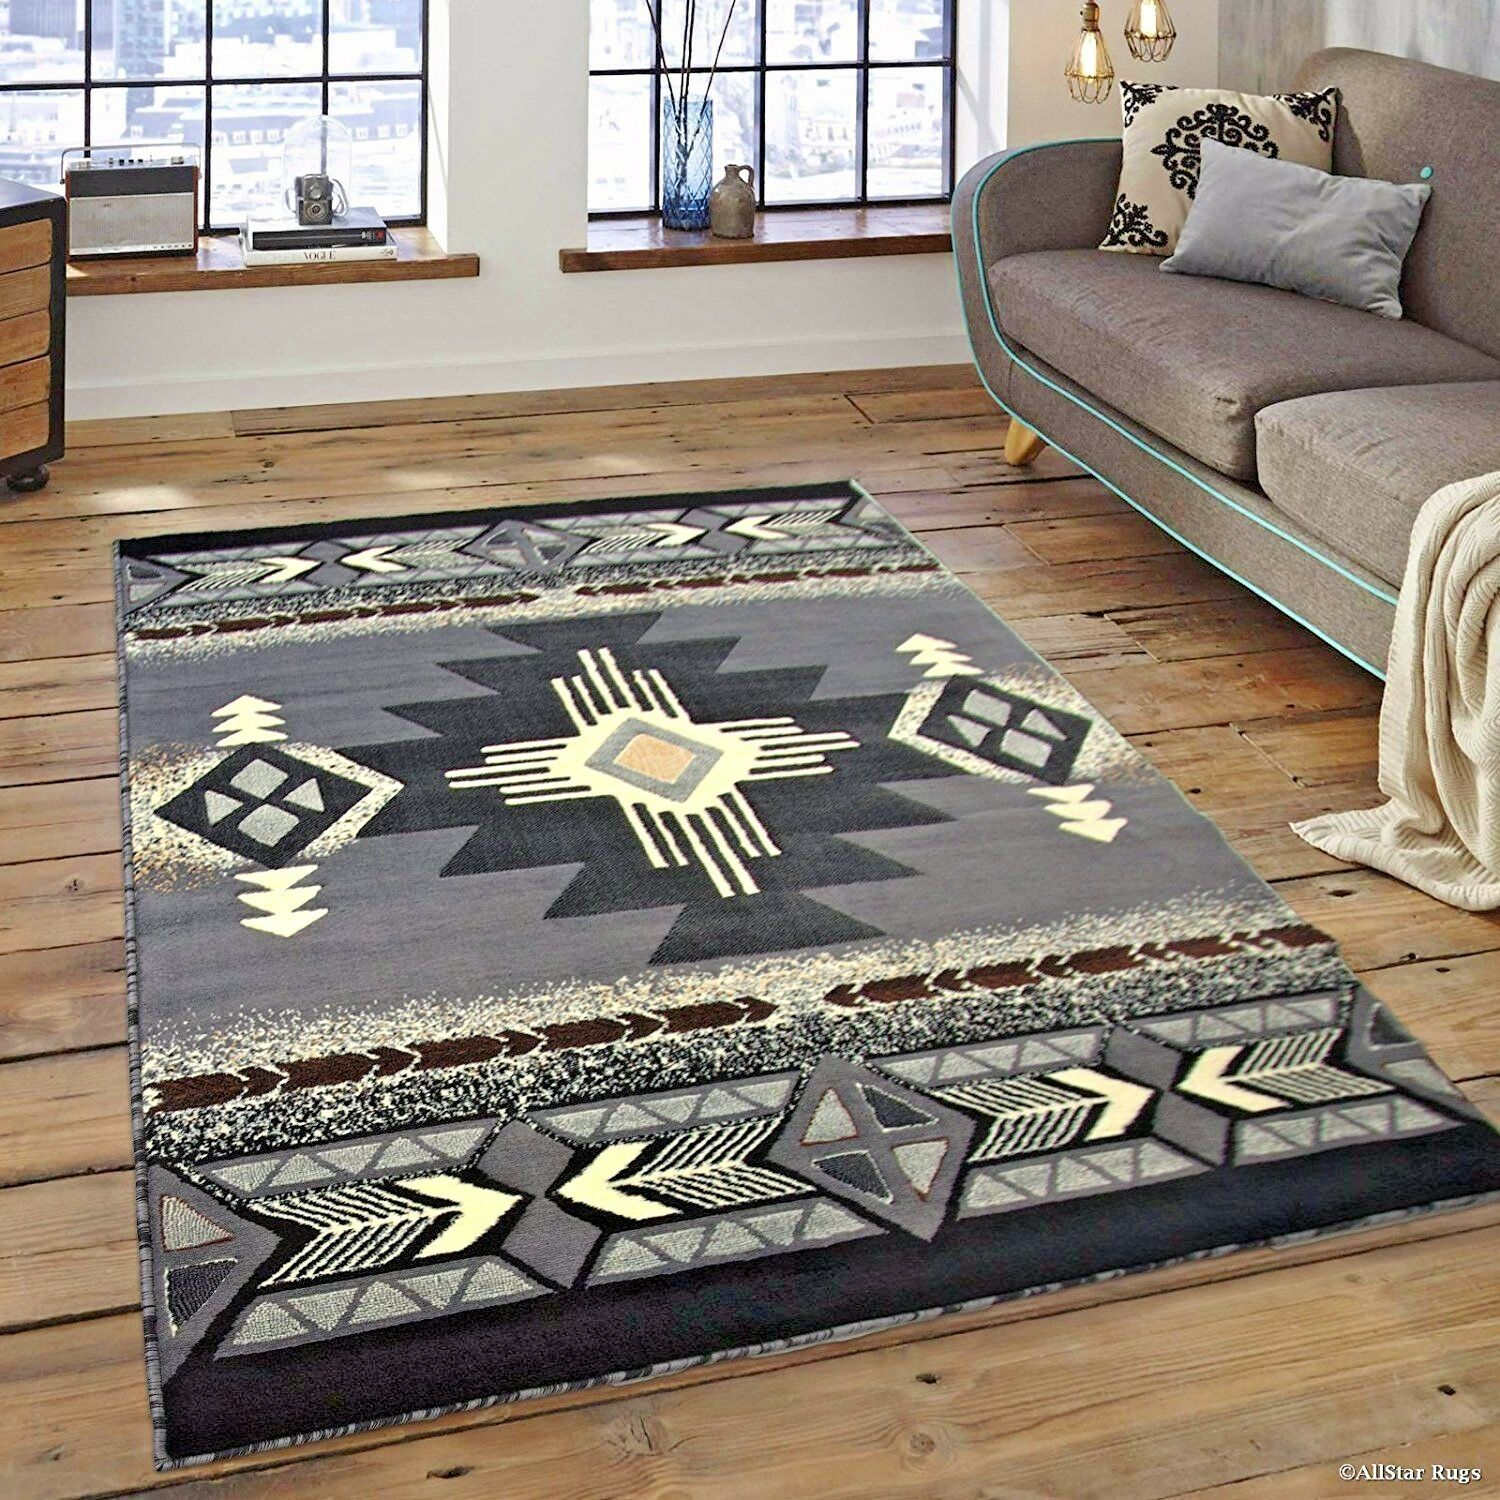 Rugs Area Rugs Carpet 8x10 Area Rug Floor Big Gray Large